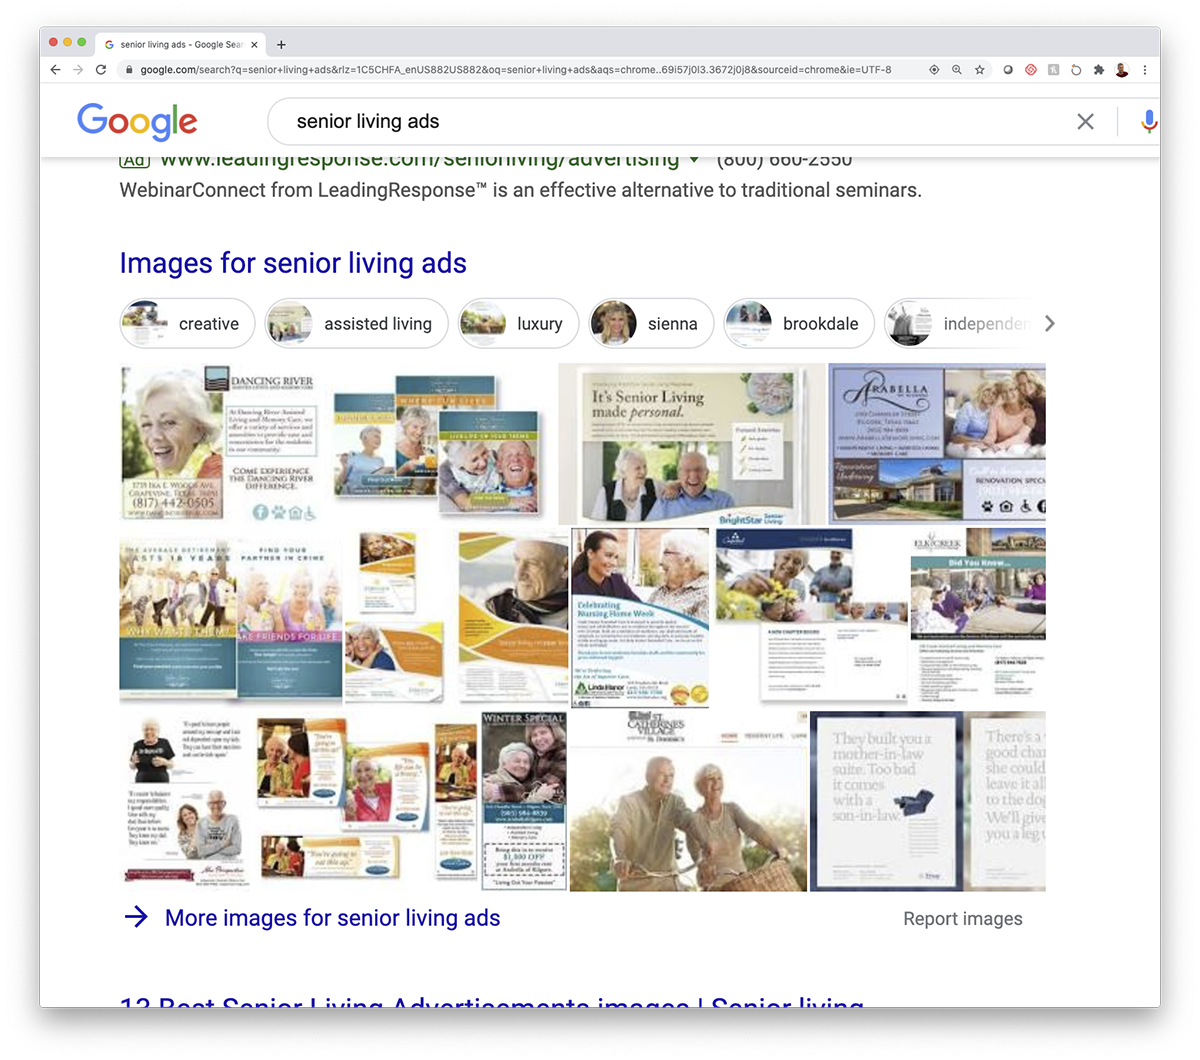 examples of senior living ads from Google